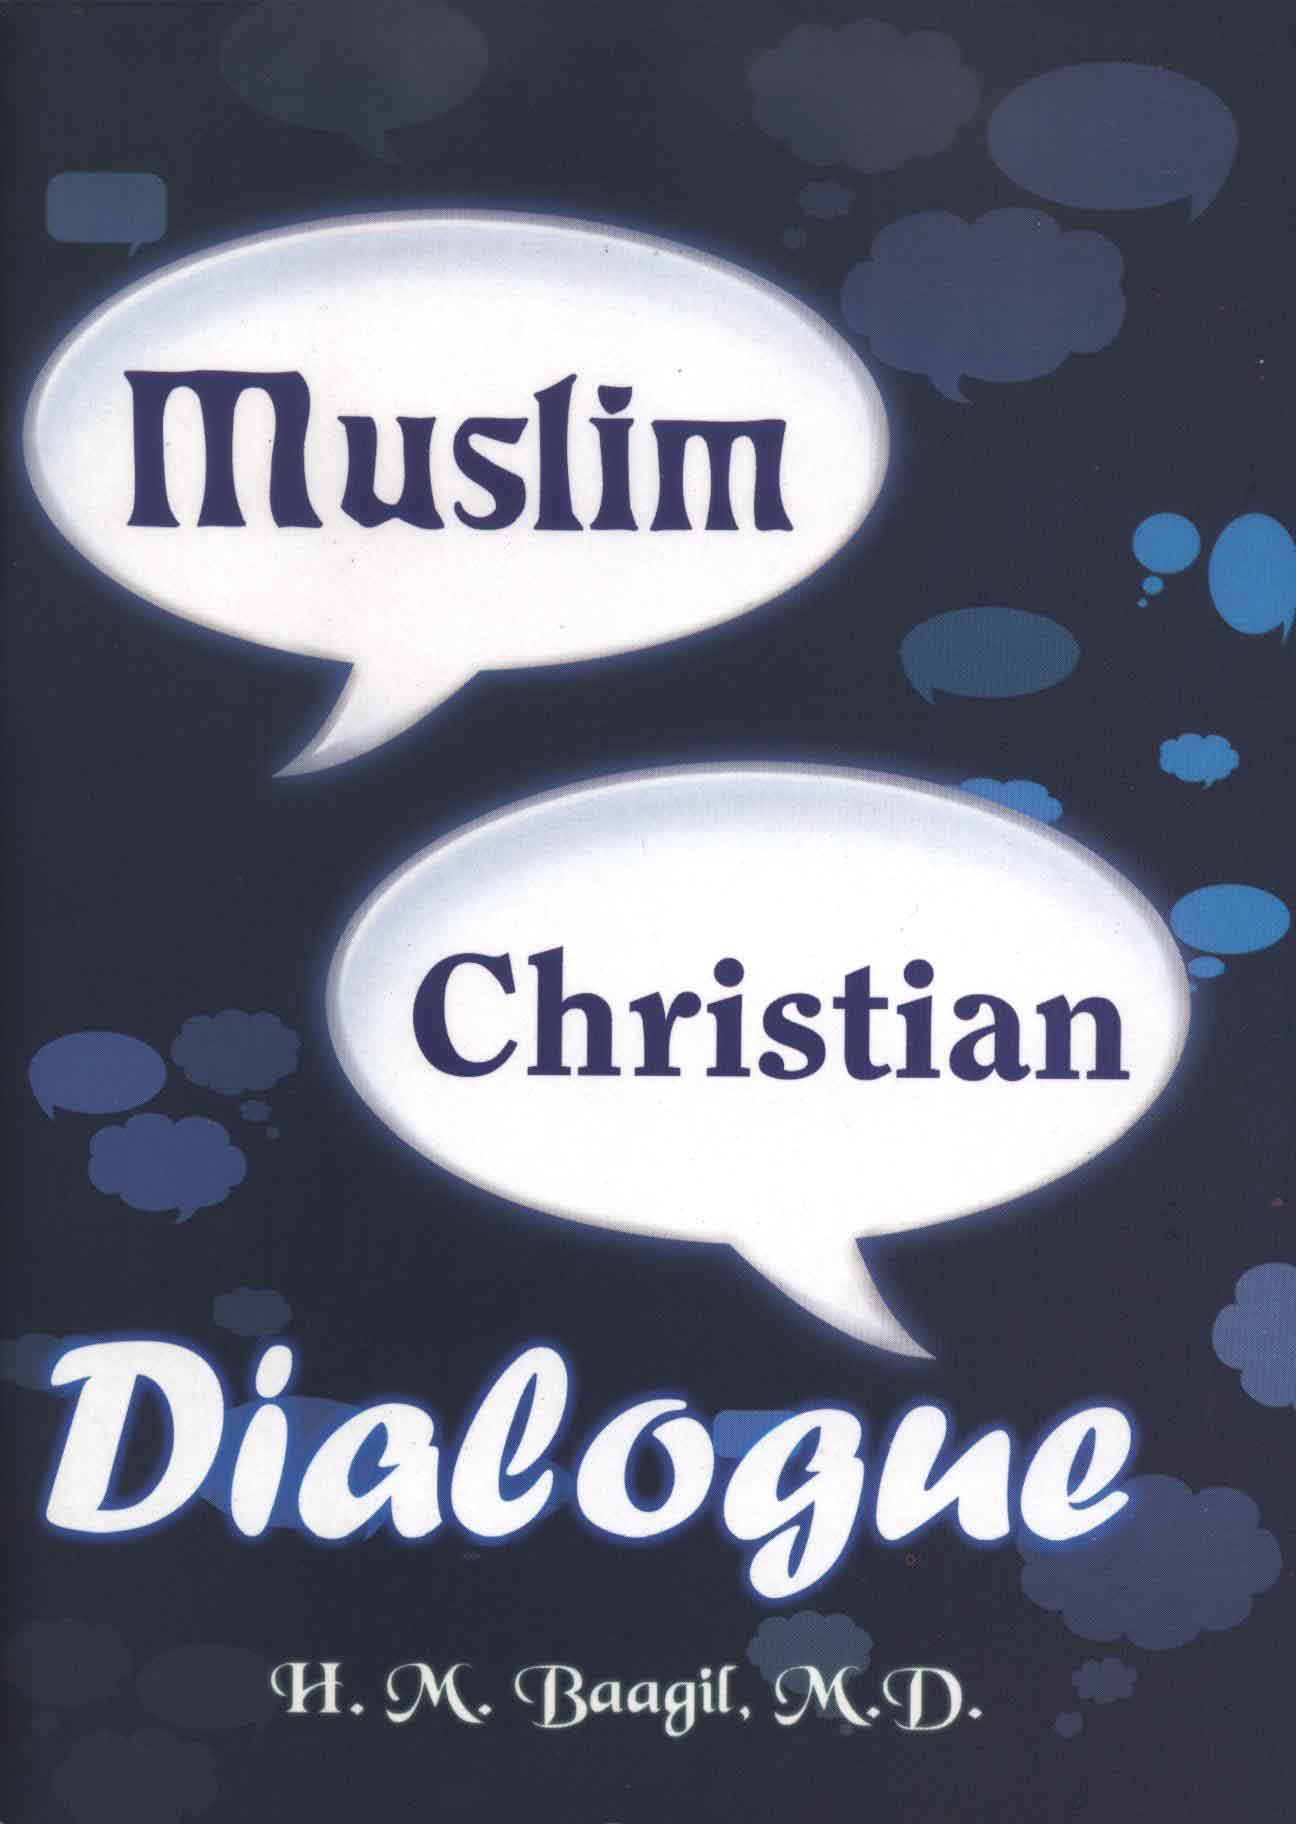 muslim christian dialogue essay Read a muslim view of christianity: essays on dialogue by mahmoud ayoub, mission studies on deepdyve, the largest online rental service for scholarly research with thousands of academic publications available at your fingertips.